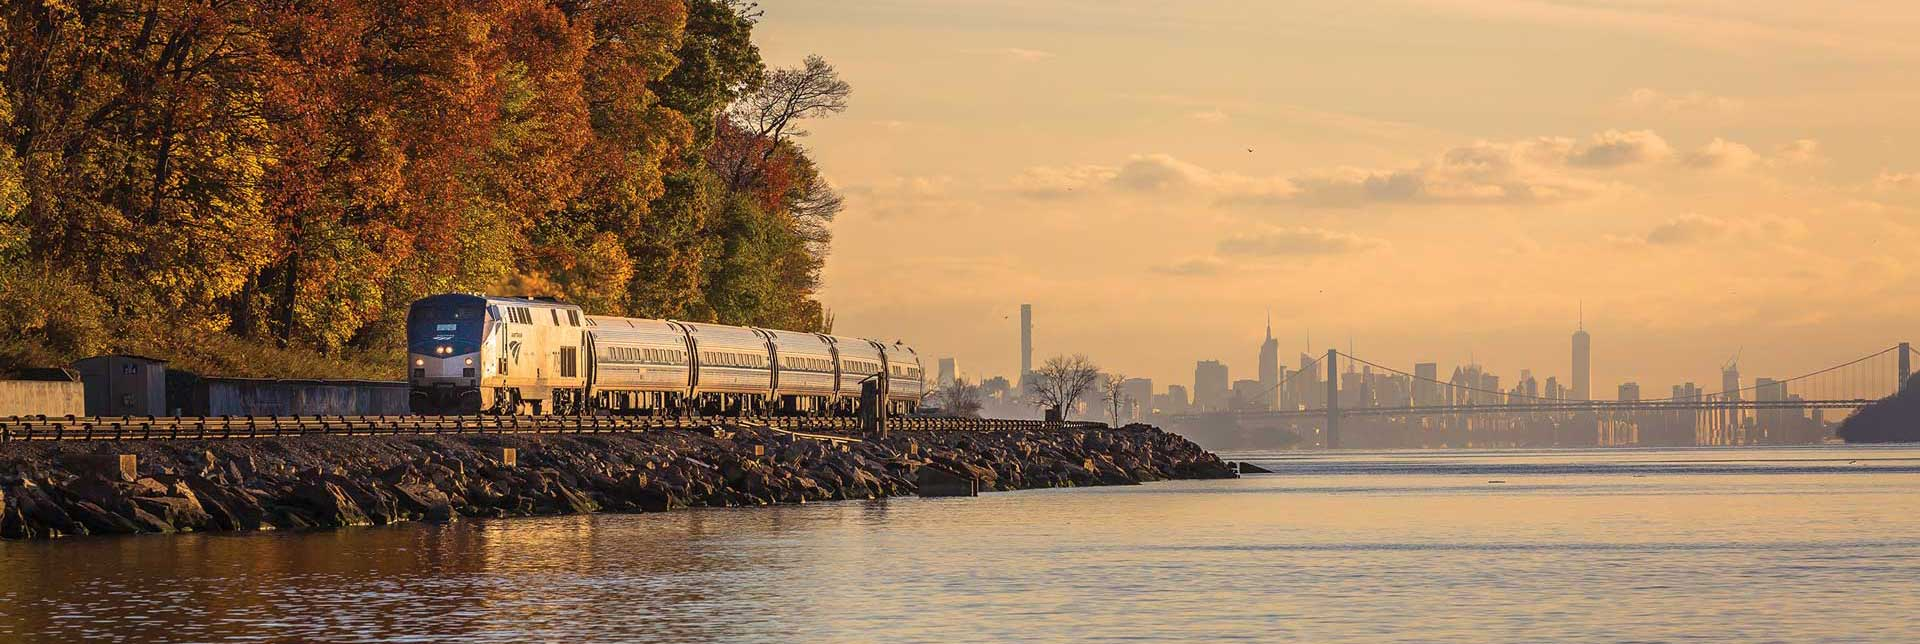 5 of the Best Roundtrip Train Vacations to Book Now ...